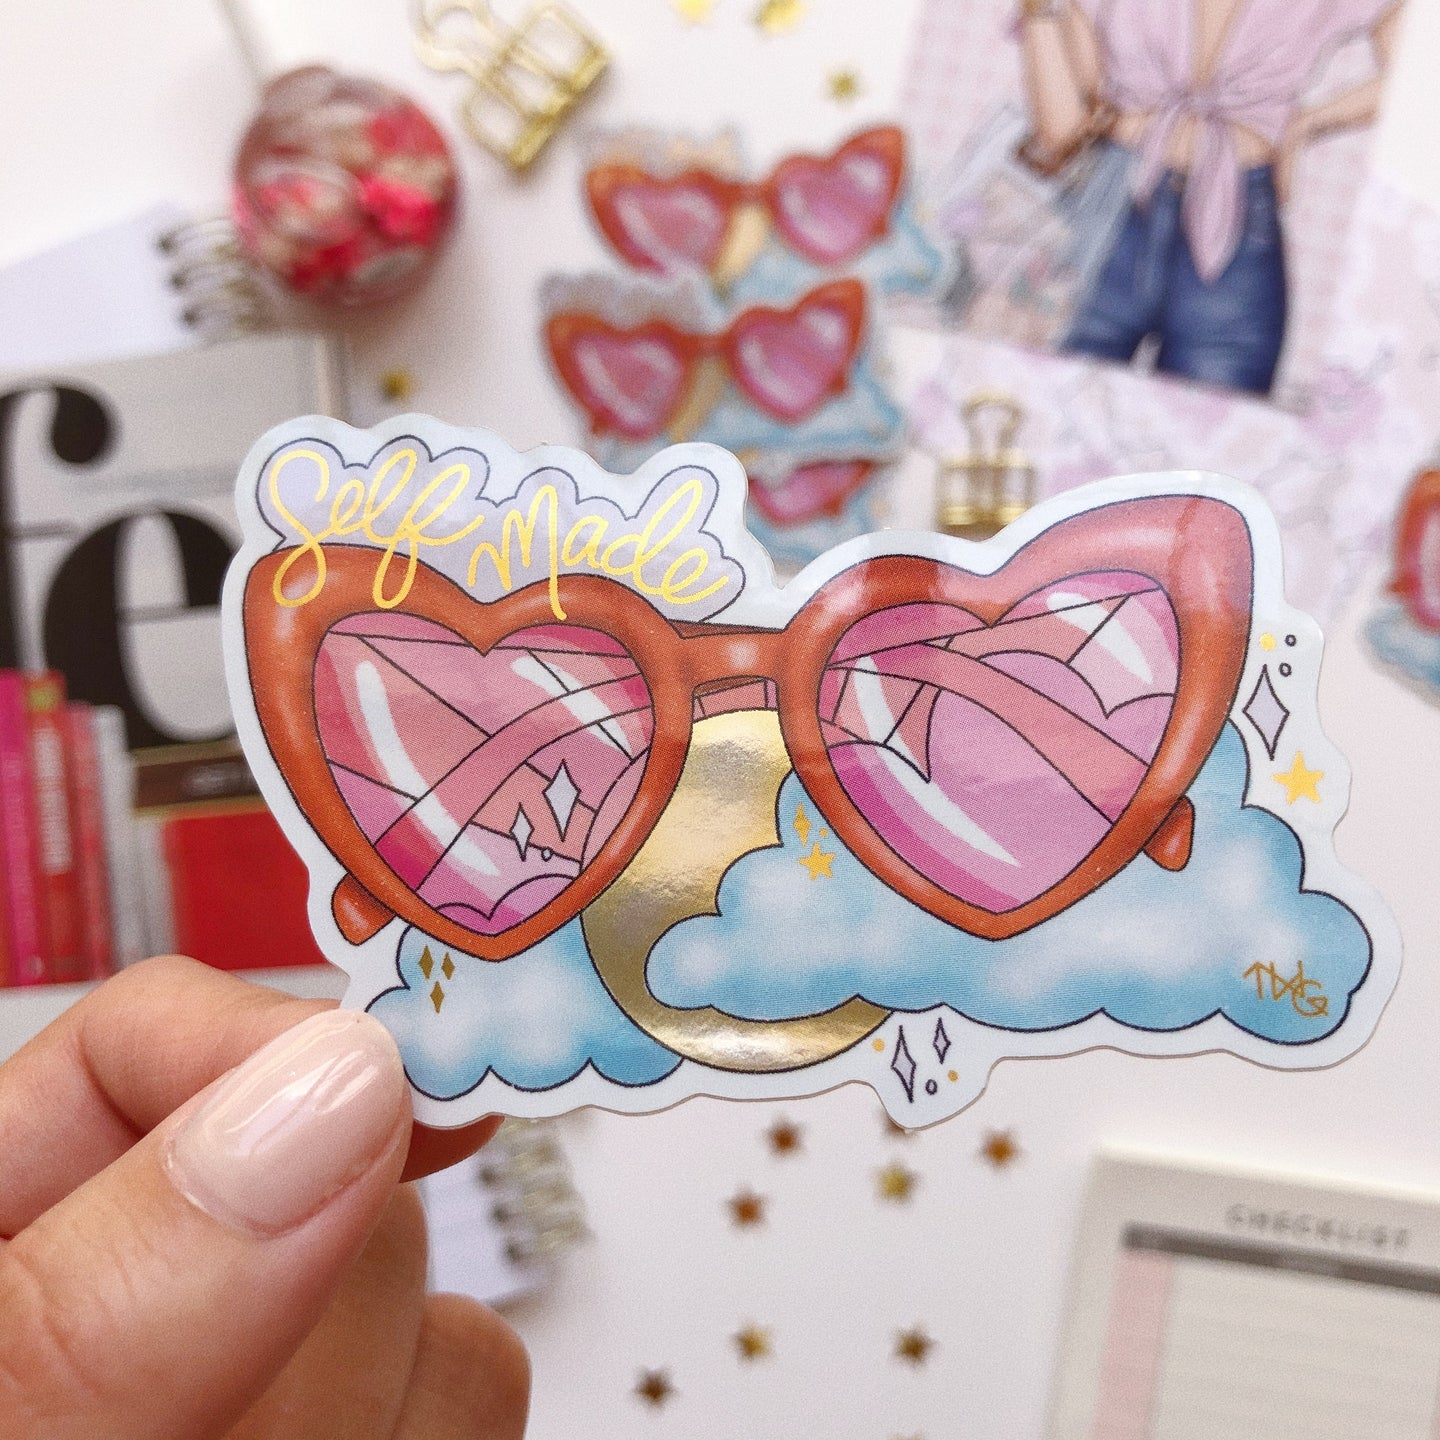 Self Made Sunnies - Die Cut Sticker